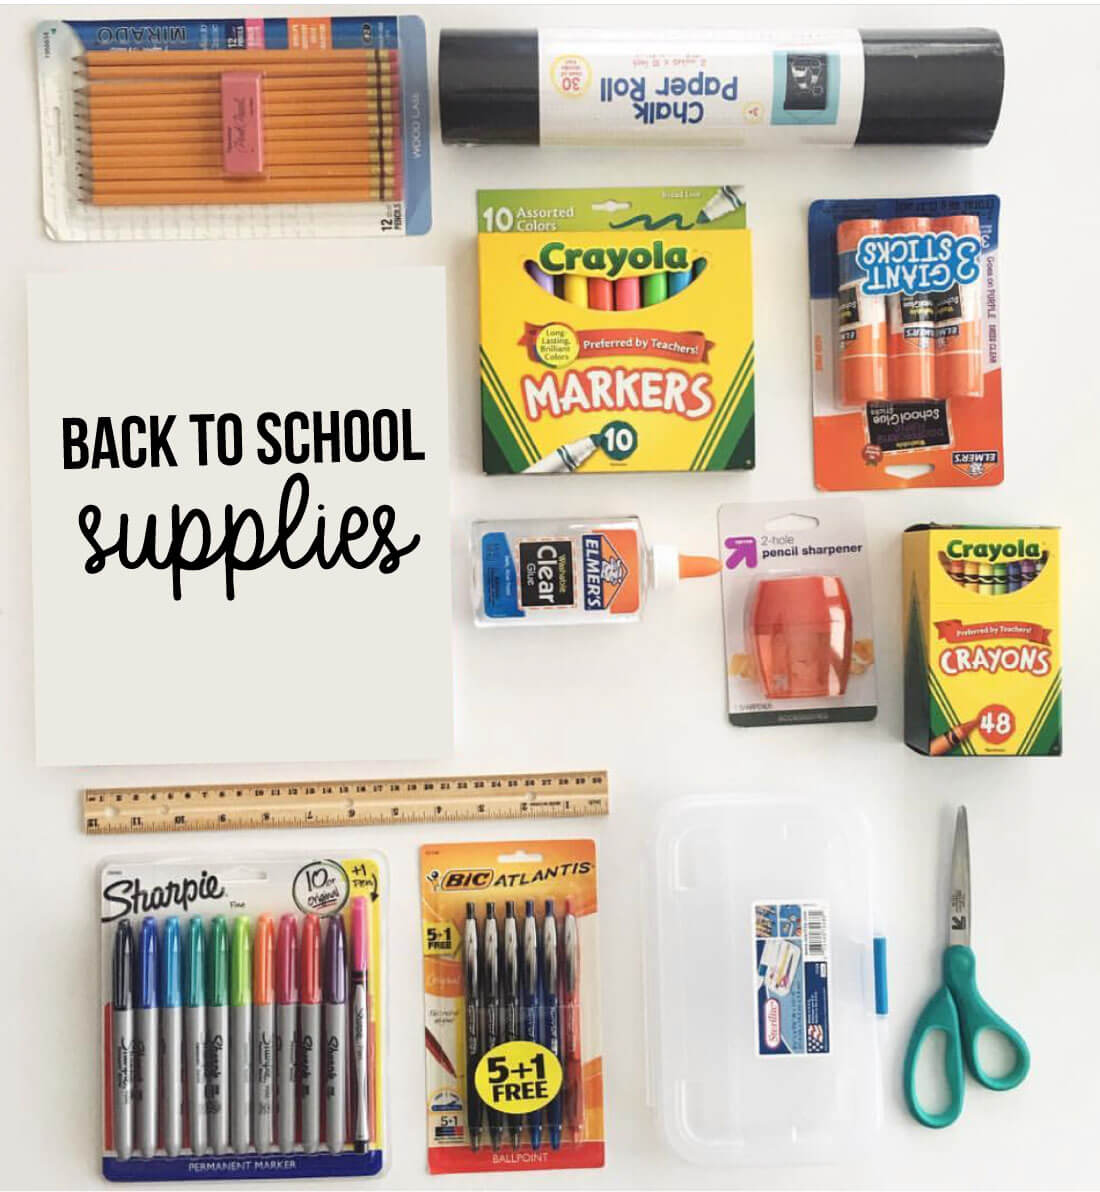 Back to School Supplies - use this guide to get the best deals for back to school.